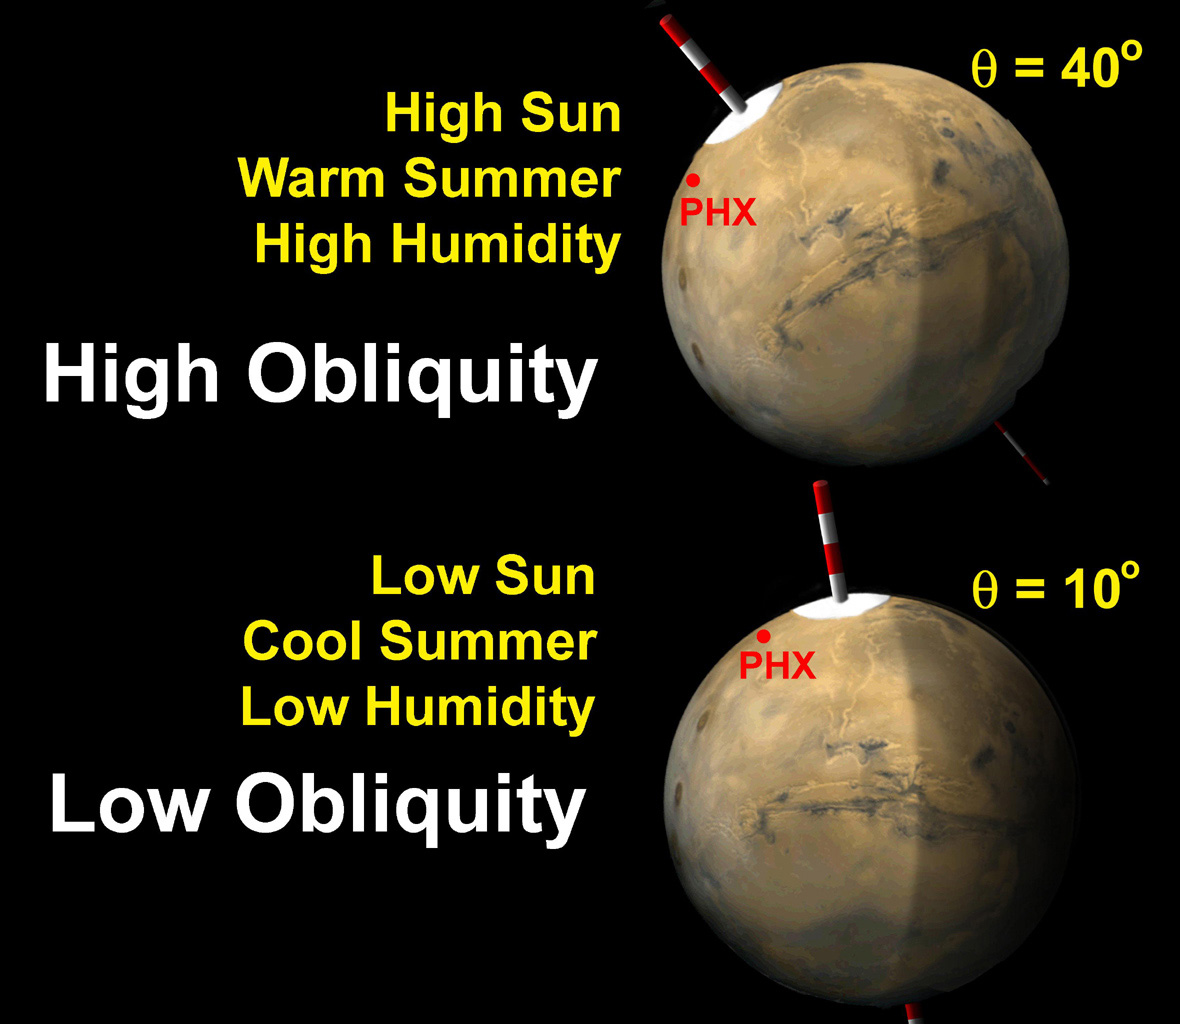 The tilt of Mars' spin axis (obliquity) varies cyclically over hundreds of thousands of years, and affects the sunlight falling on the poles.